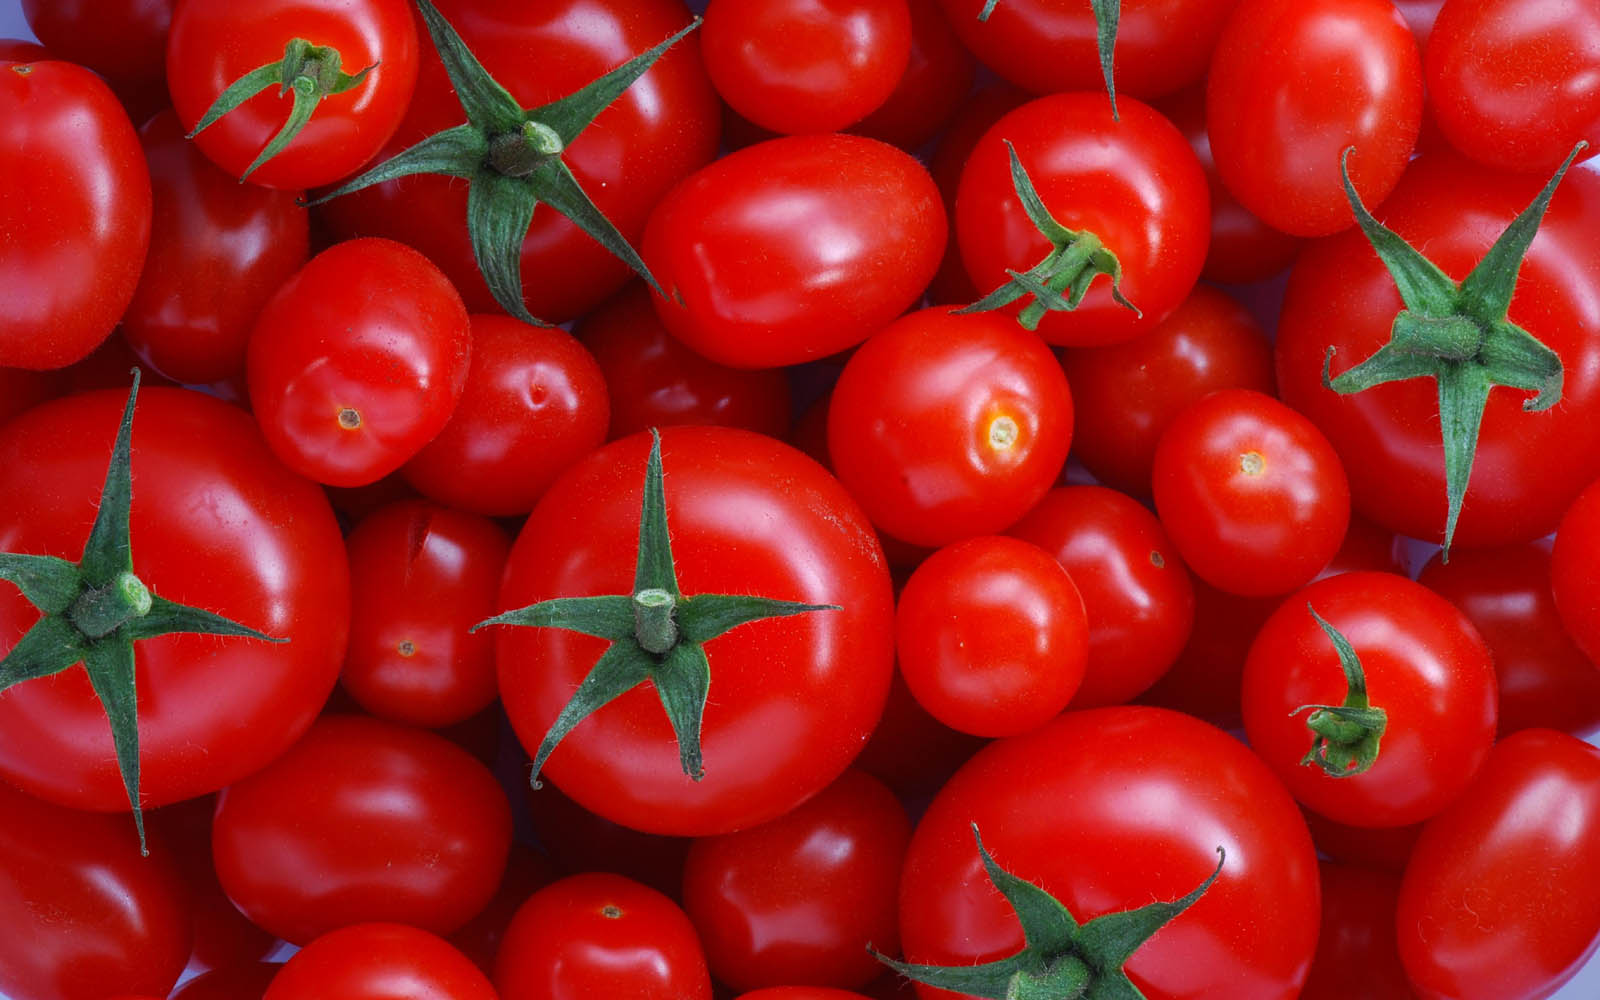 fantastic-tomatoes-wallpaper-44461-45587-hd-wallpapers